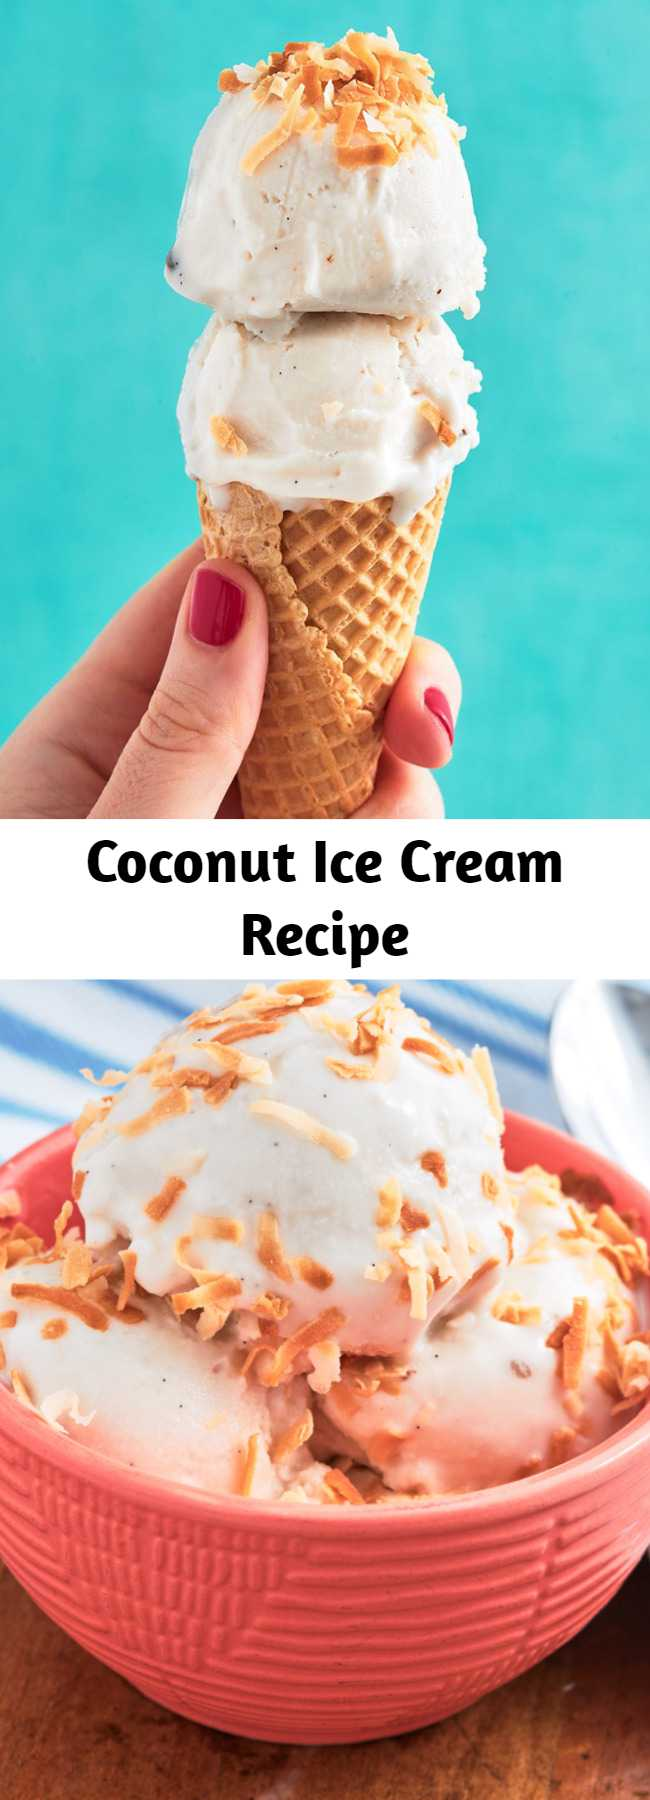 Coconut Ice Cream Recipe - Coconut Ice Cream is completely vegan and extremely smooth. Dairy free, vegan, and still so good.